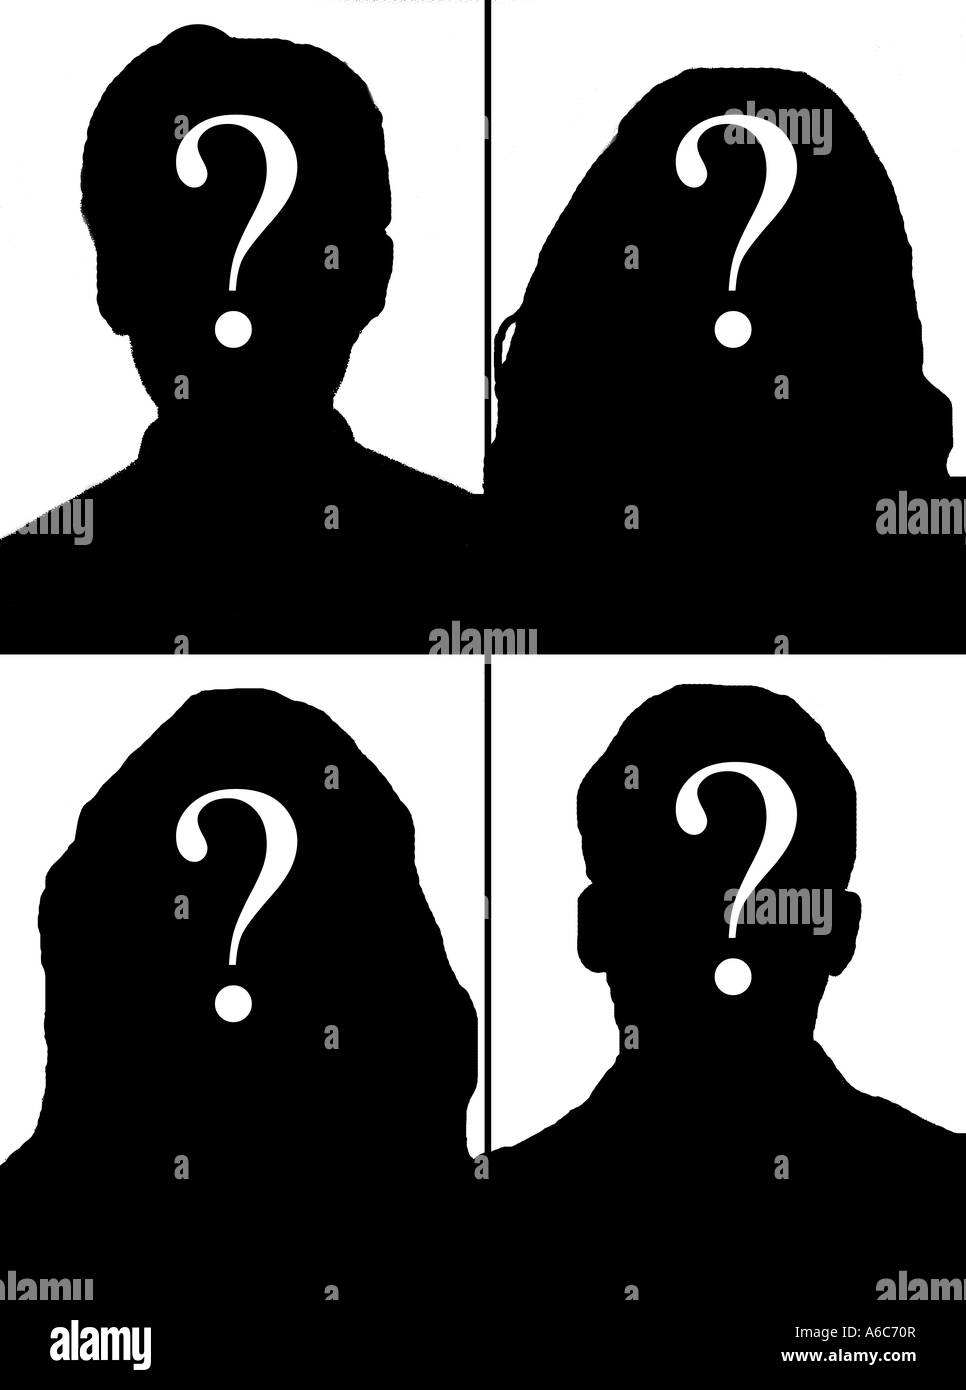 how to take a silhouette photo of face